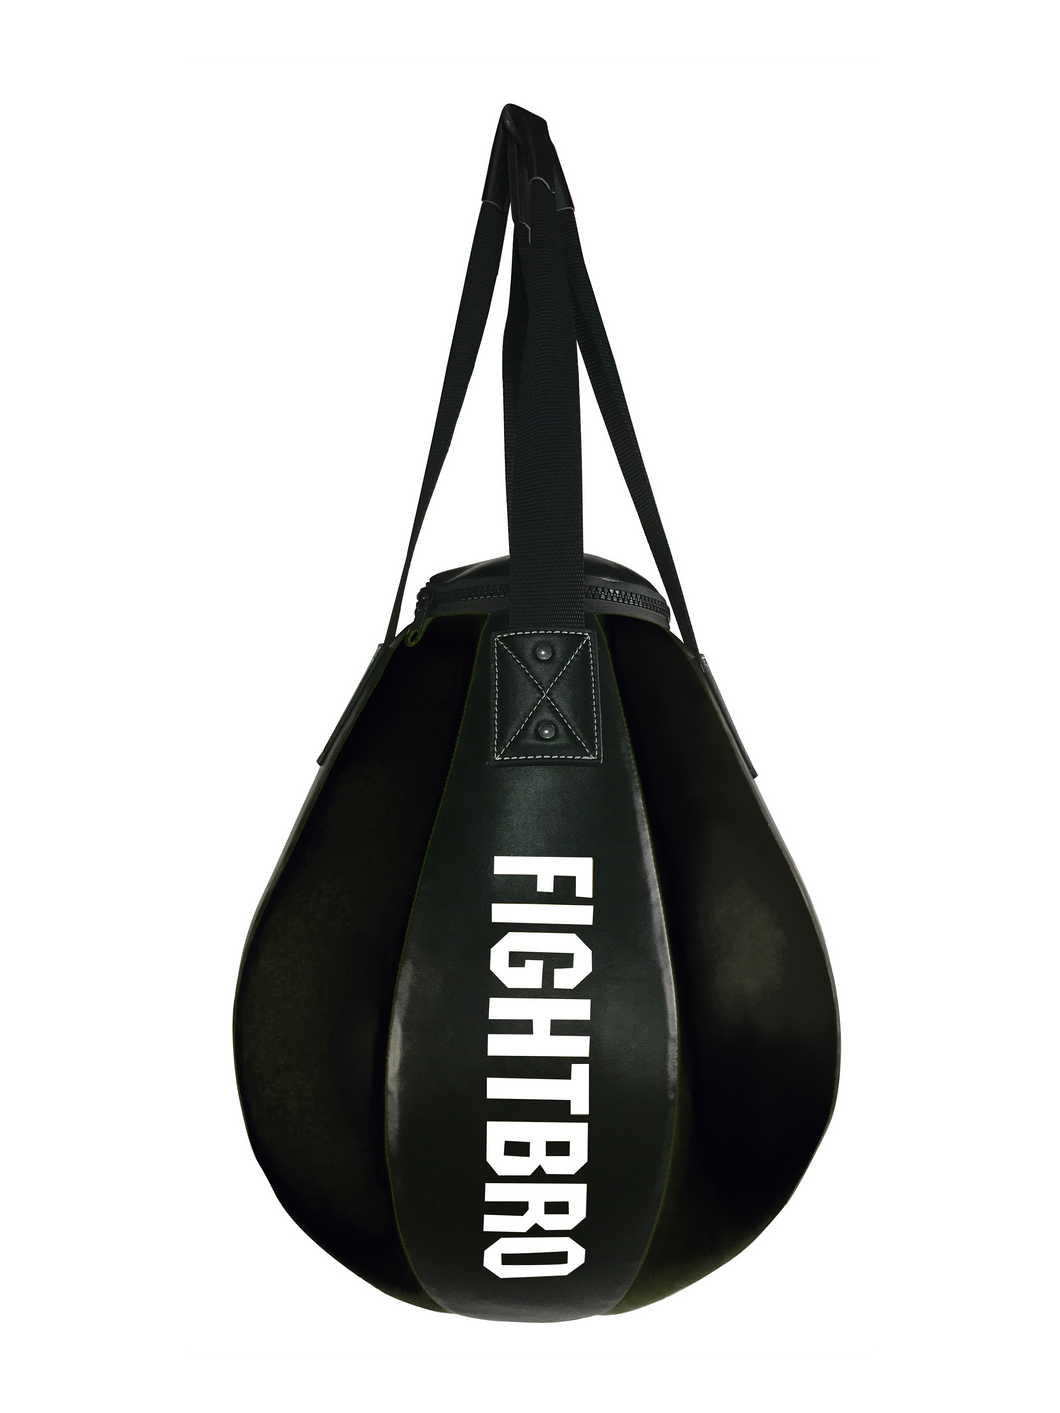 FIGHTBRO F855-D Boxing bag